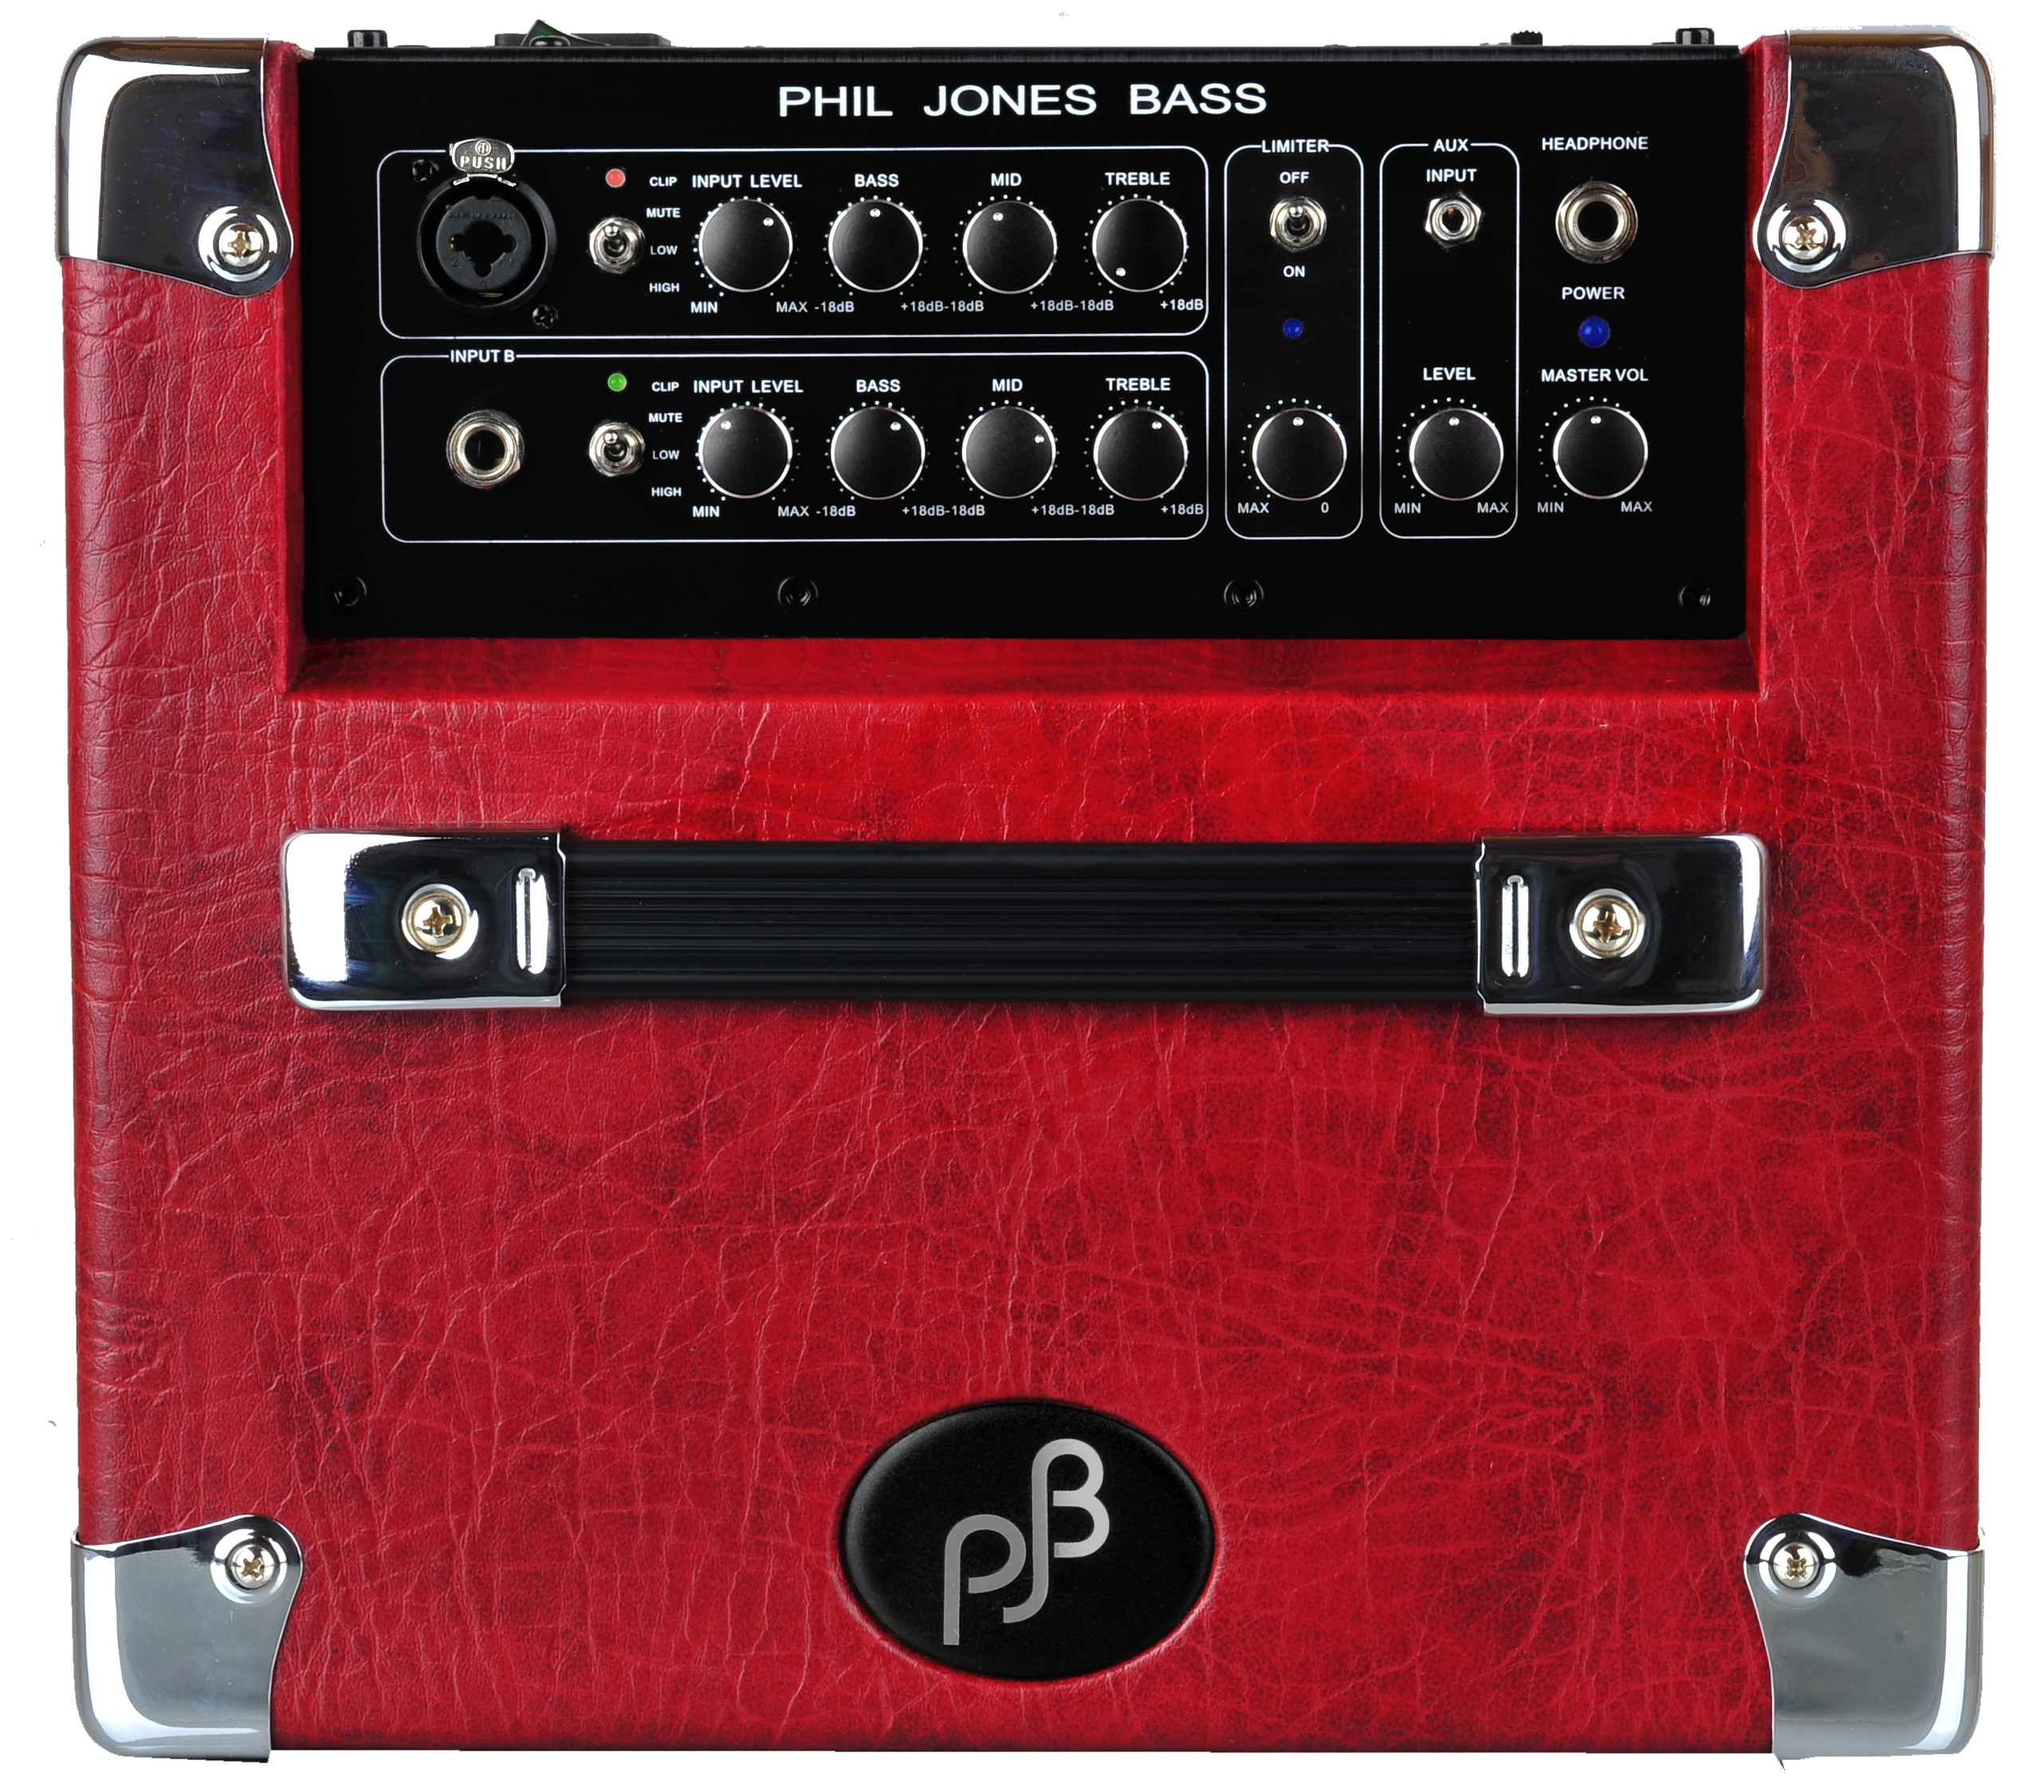 Phil Jones Bass BASS CUB BG-100 RED